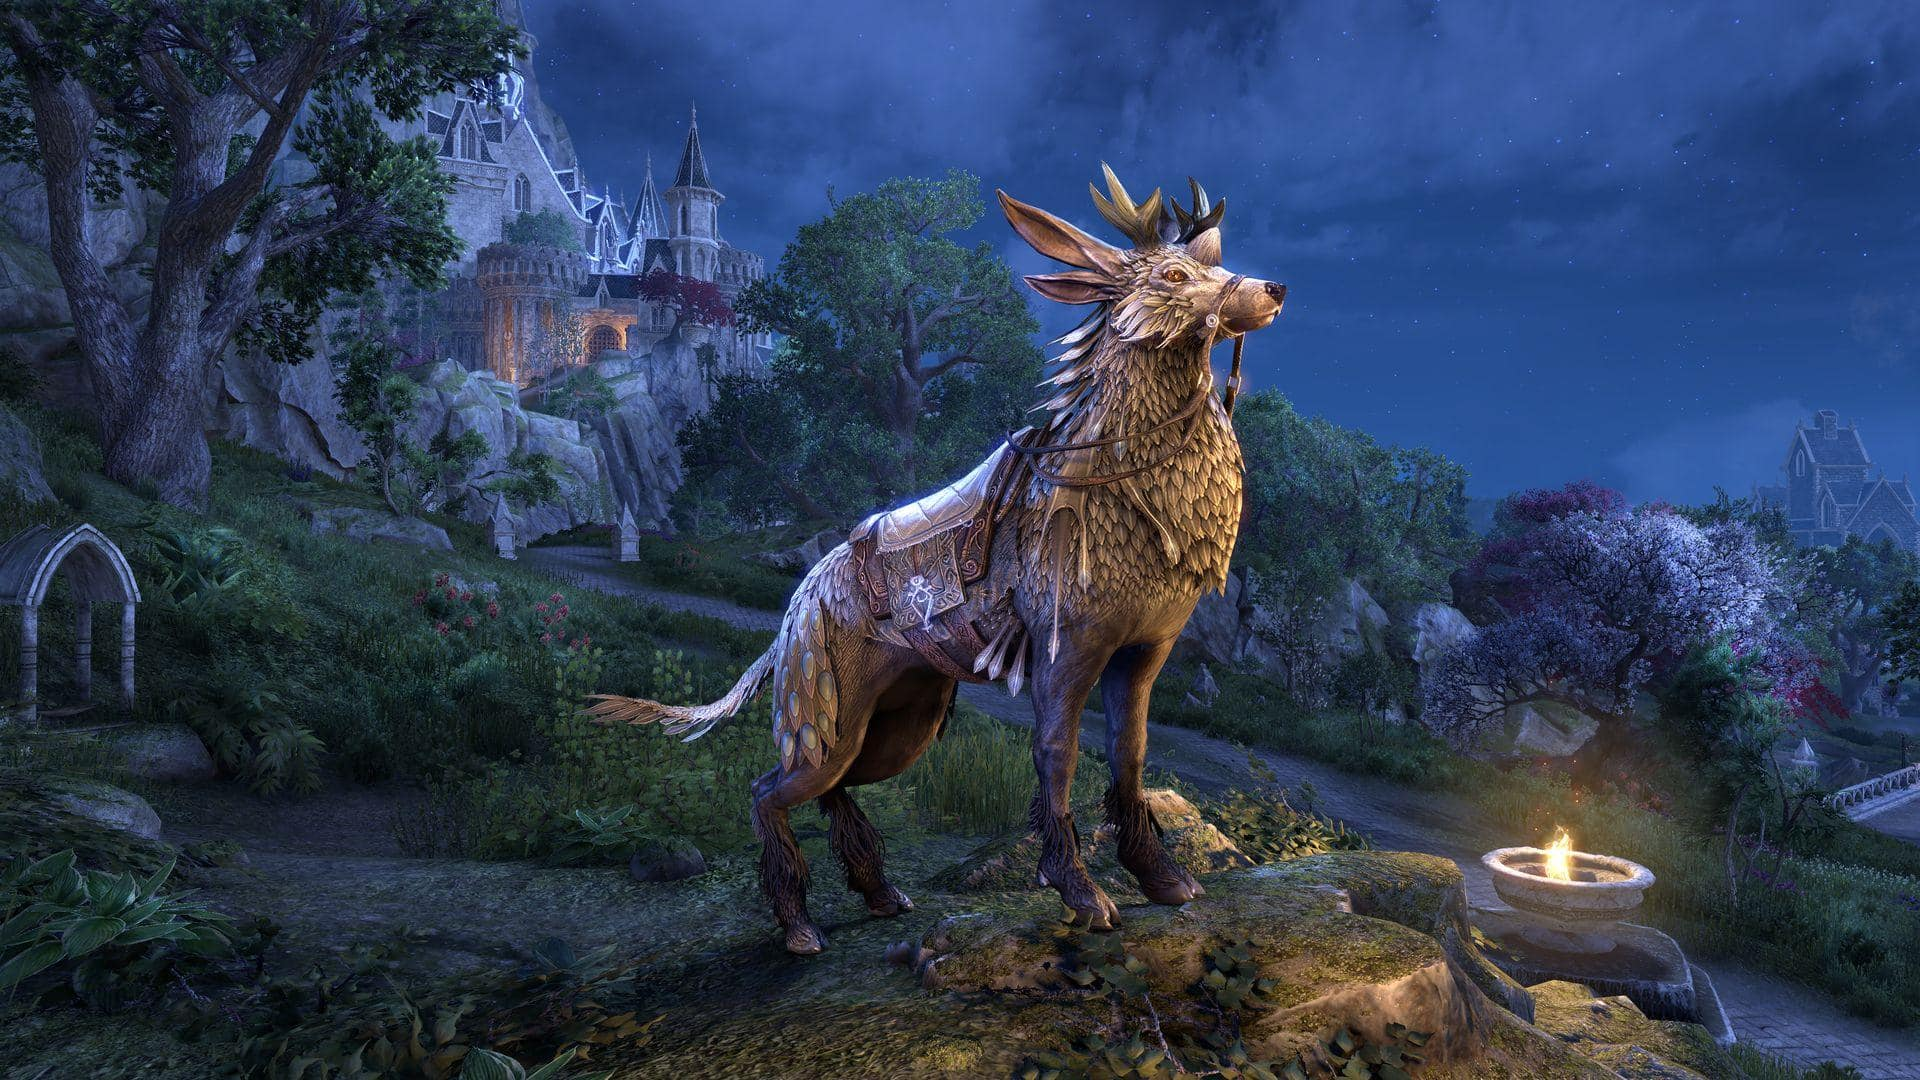 Elder Scrolls Halloween Mount 2020 Feathers Take Part in ESO's End of Year Events & Unlock an Indrik Mount